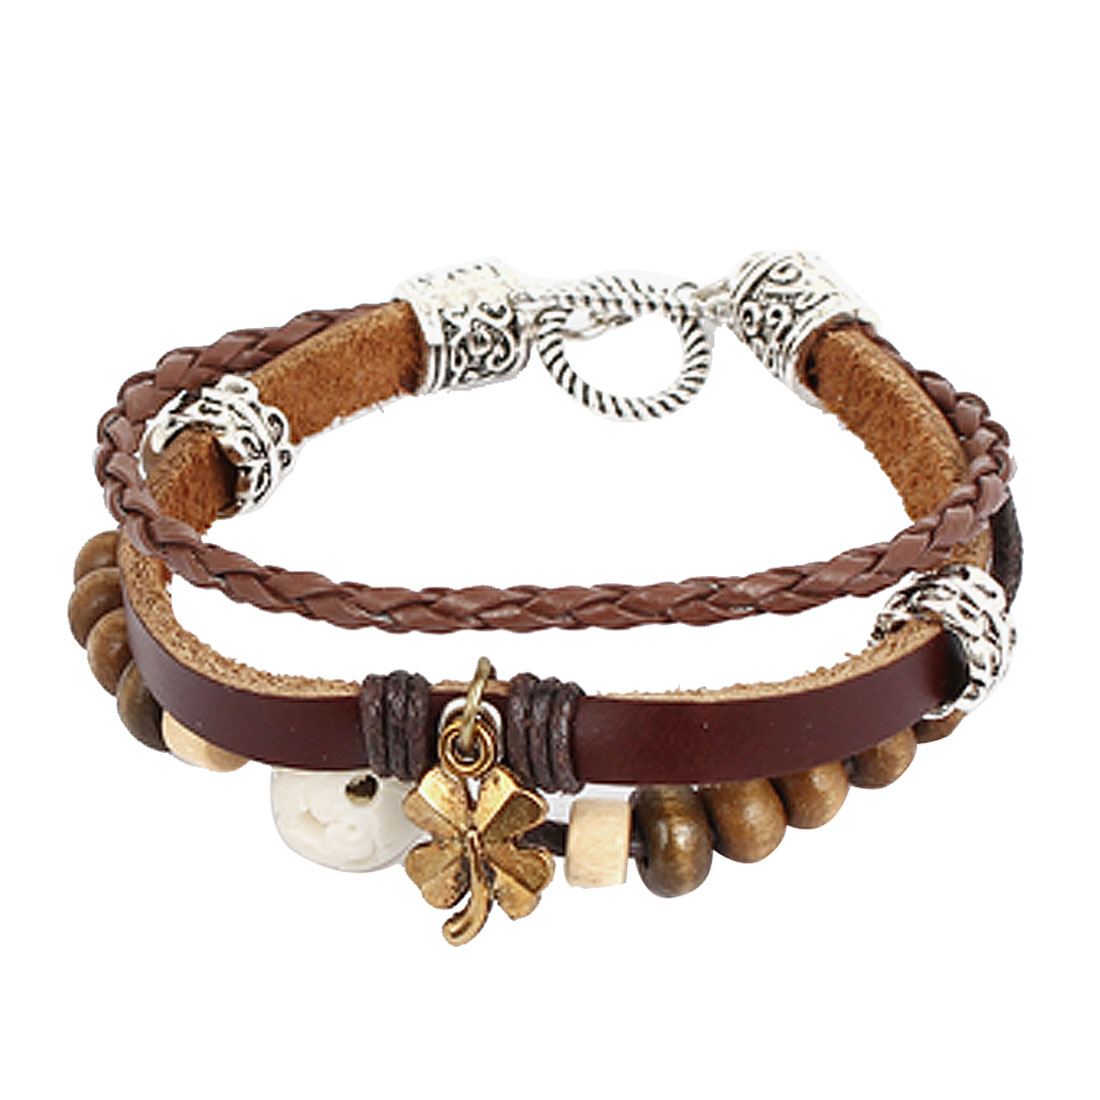 Women Retro Style Four Leaf Flover Pendant Interlocking Faux Leather Wrist Bracelet